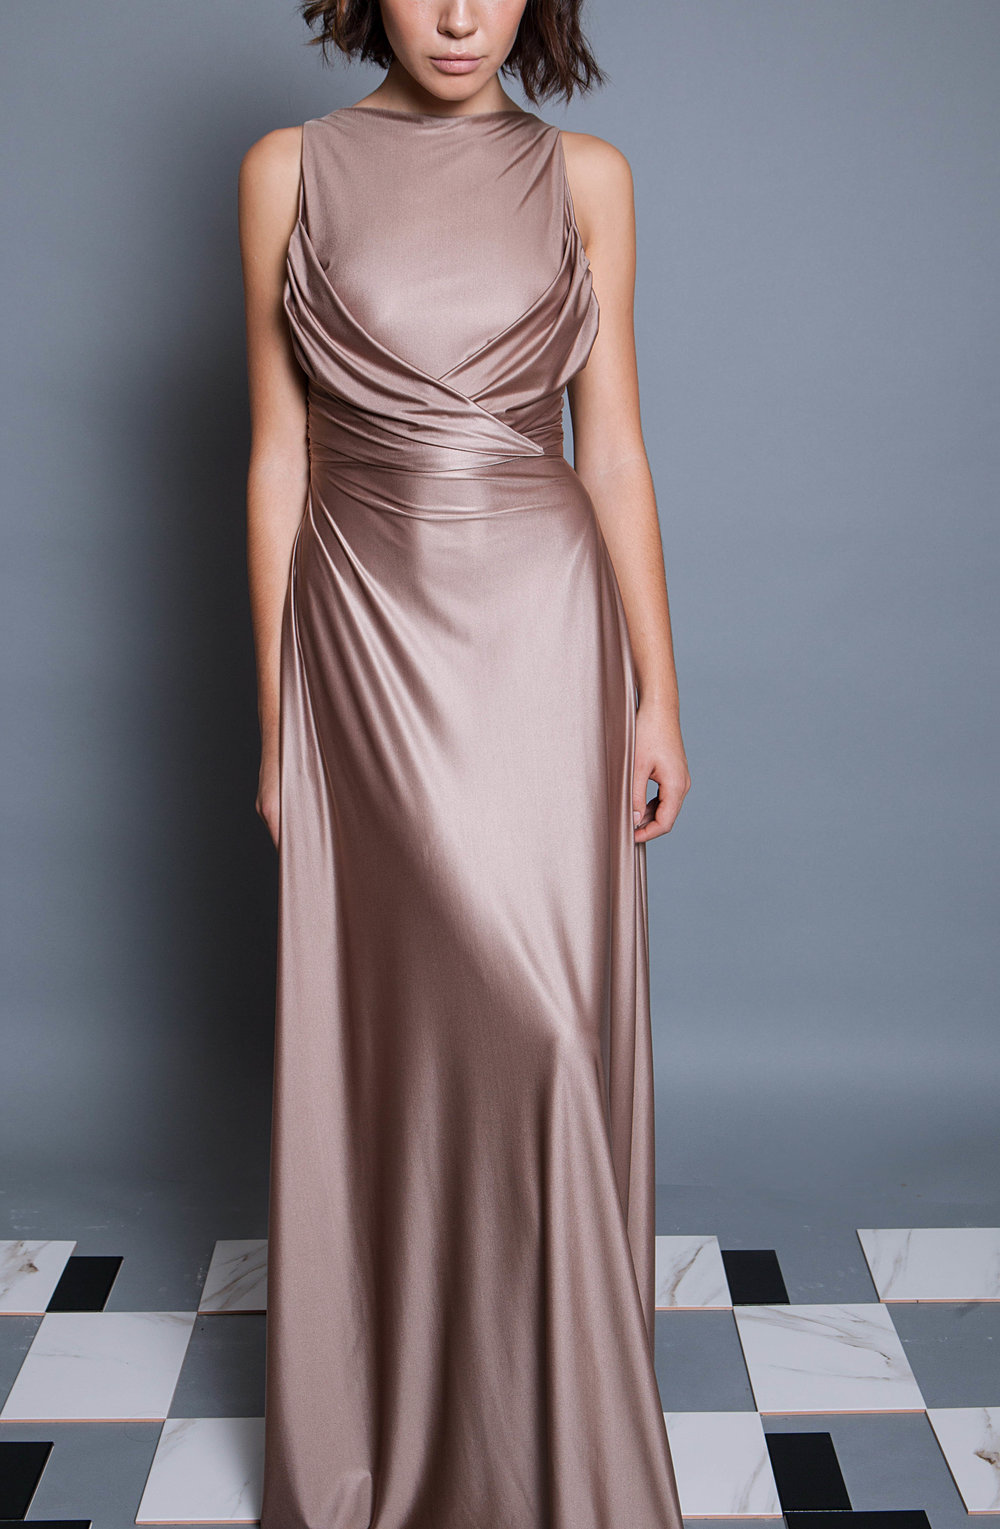 Daydream Gown - Show your curves...